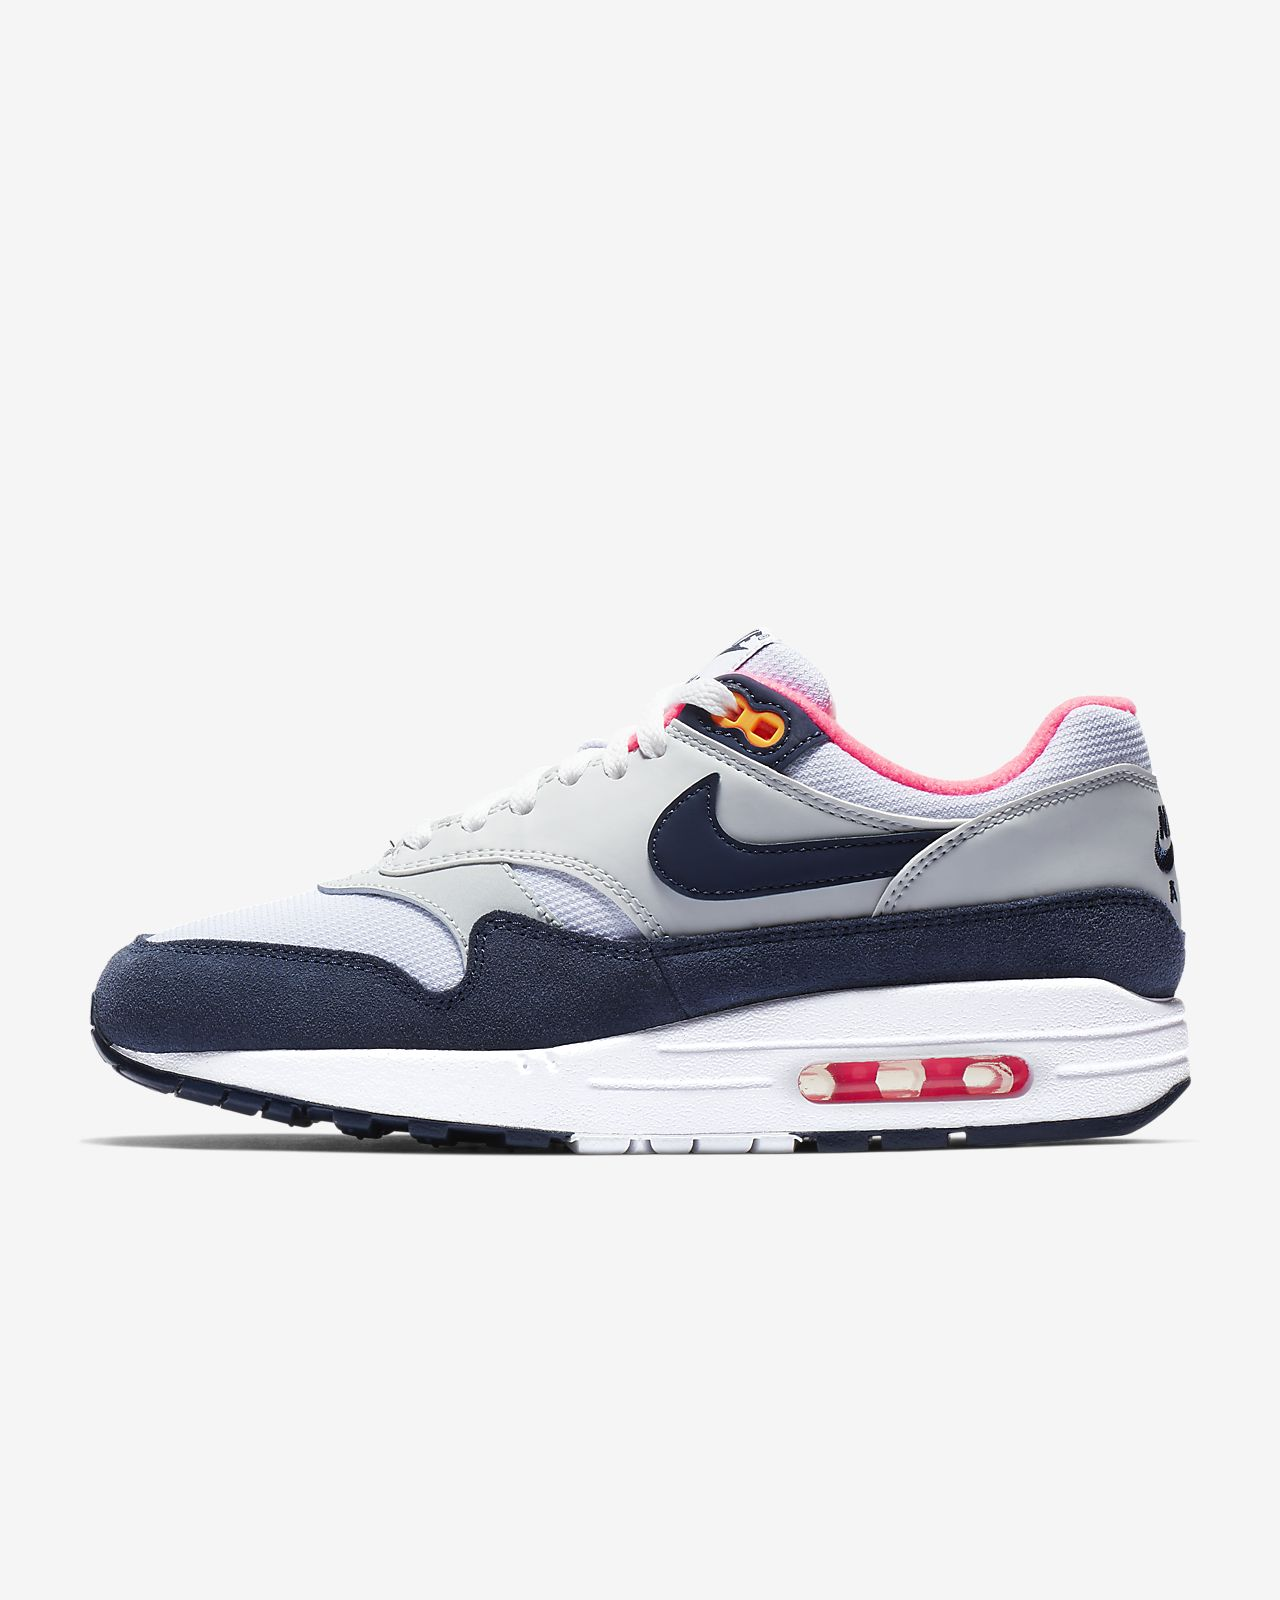 half off f3301 726db ... Nike Air Max 1 Premium Women s Shoe